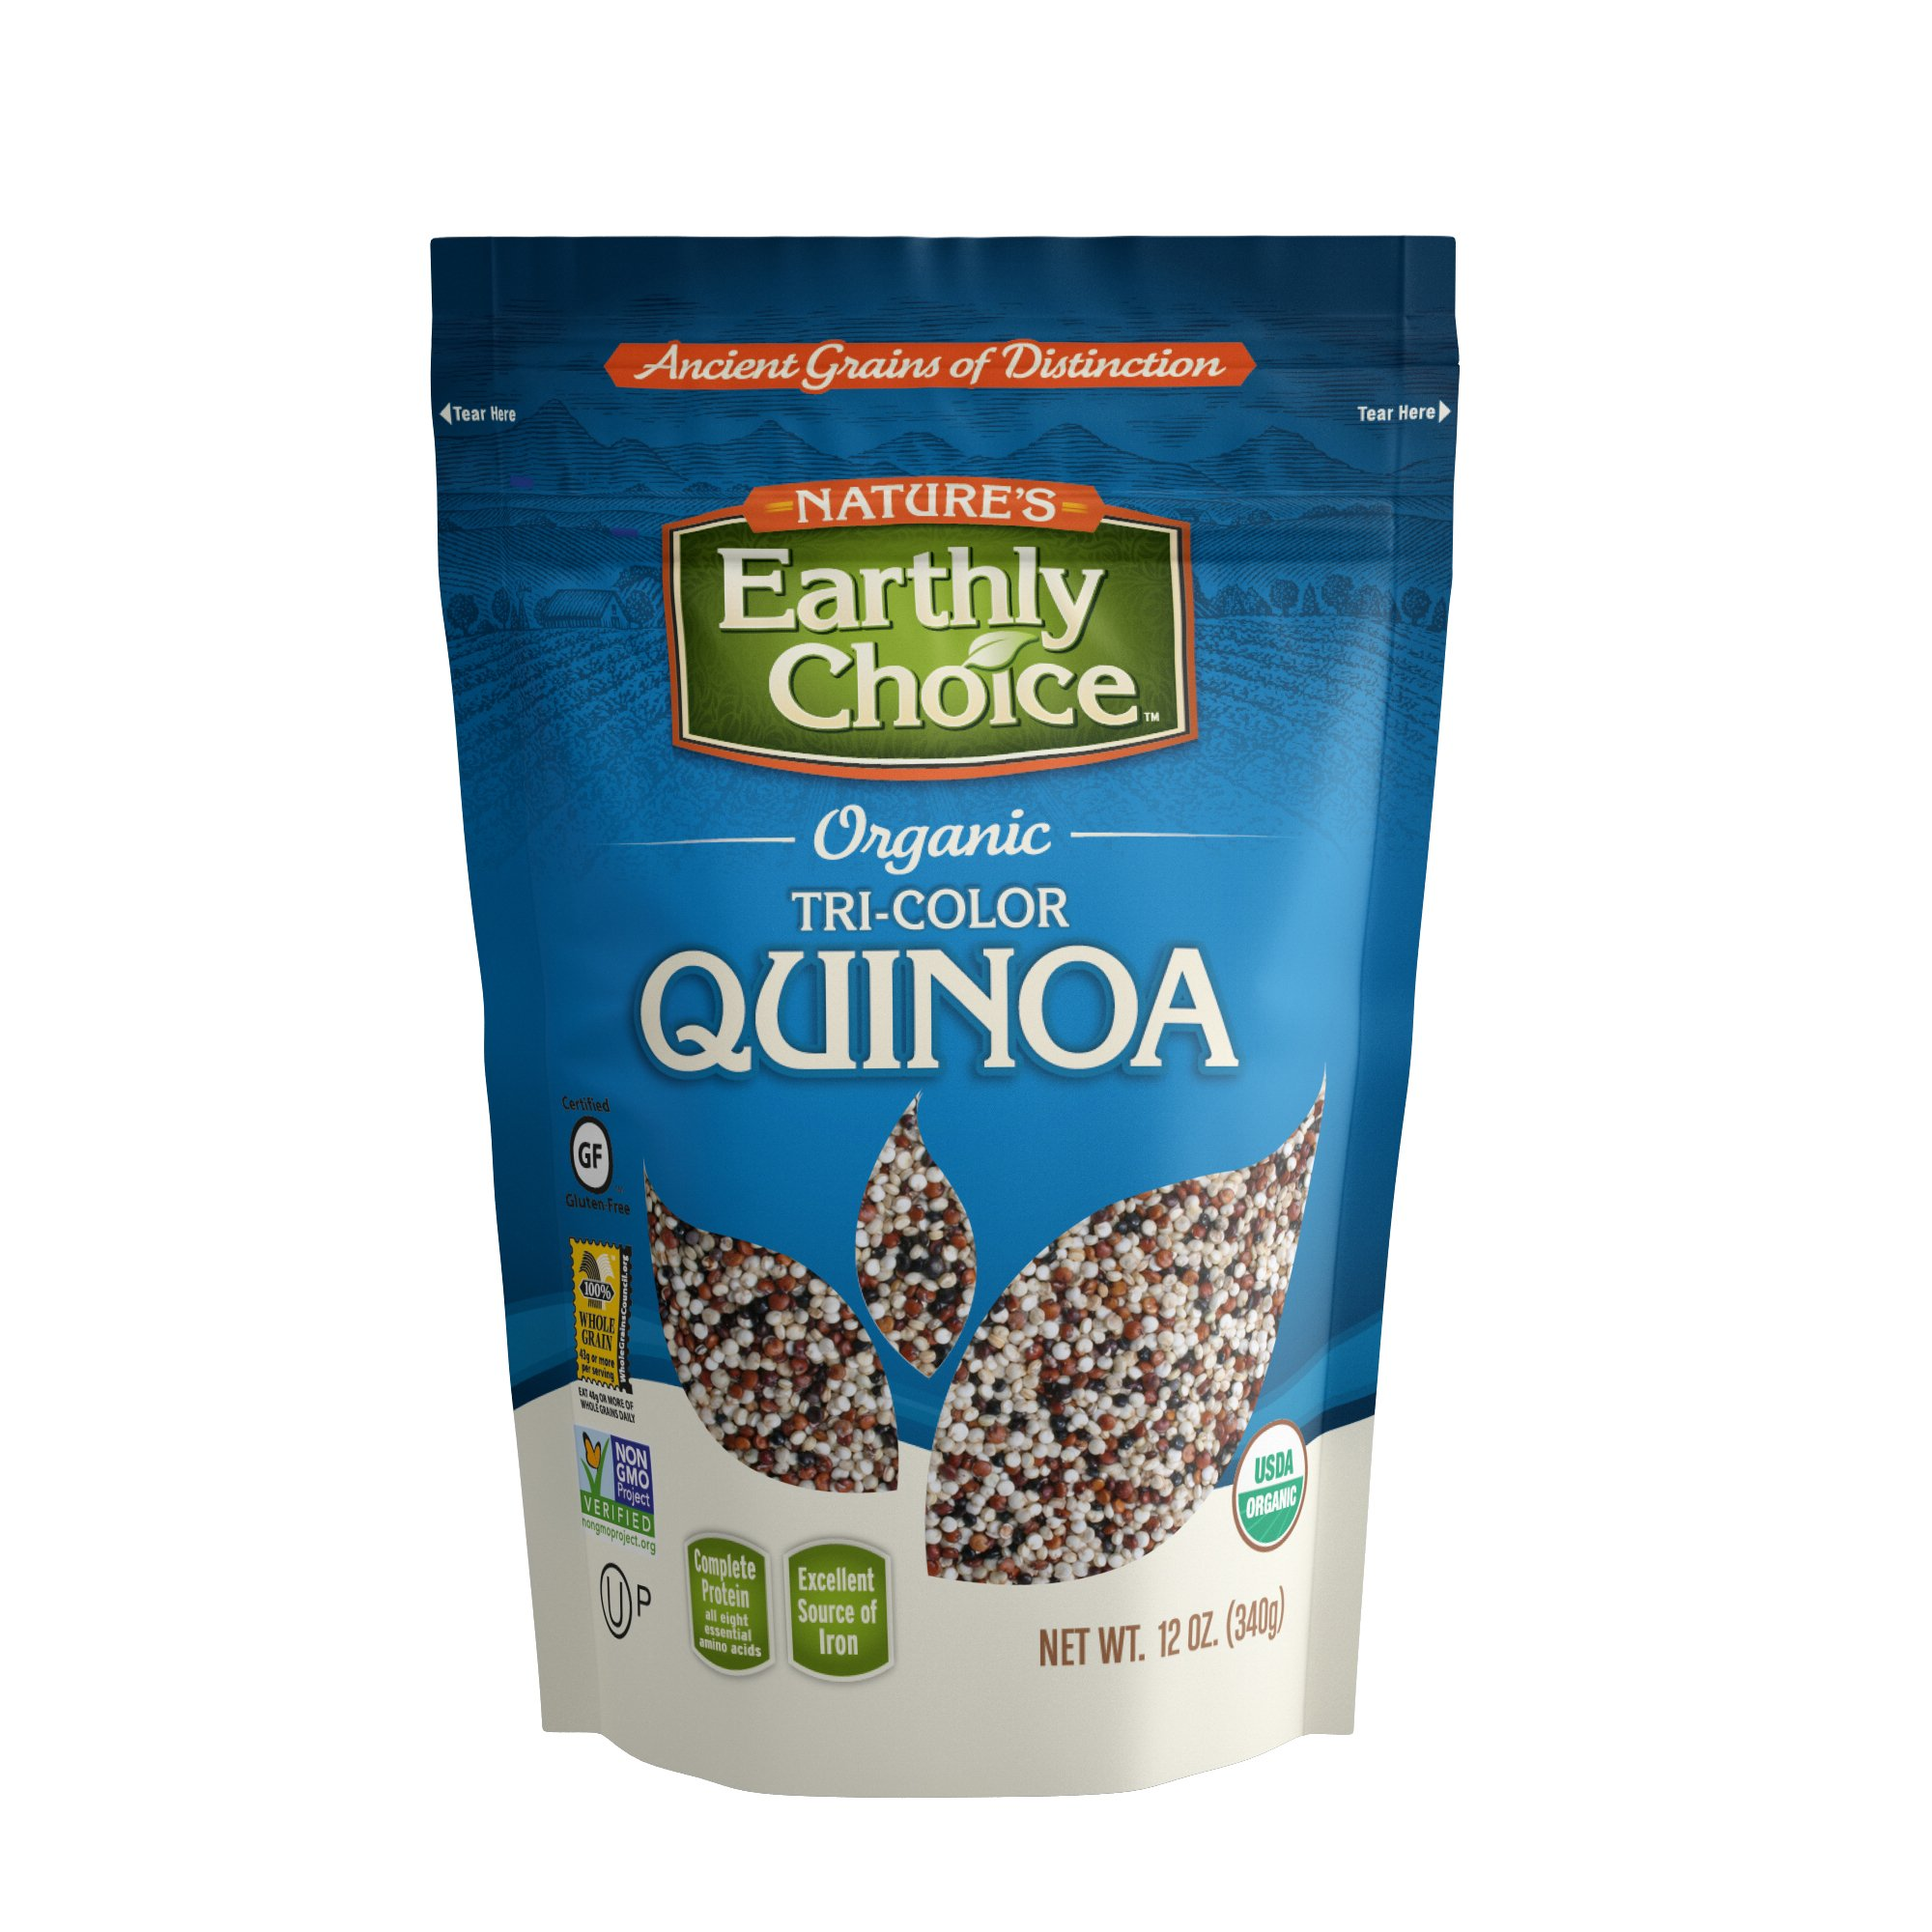 Nature's Earthly Choice Organic Tricolor Quinoa, 12 Ounce